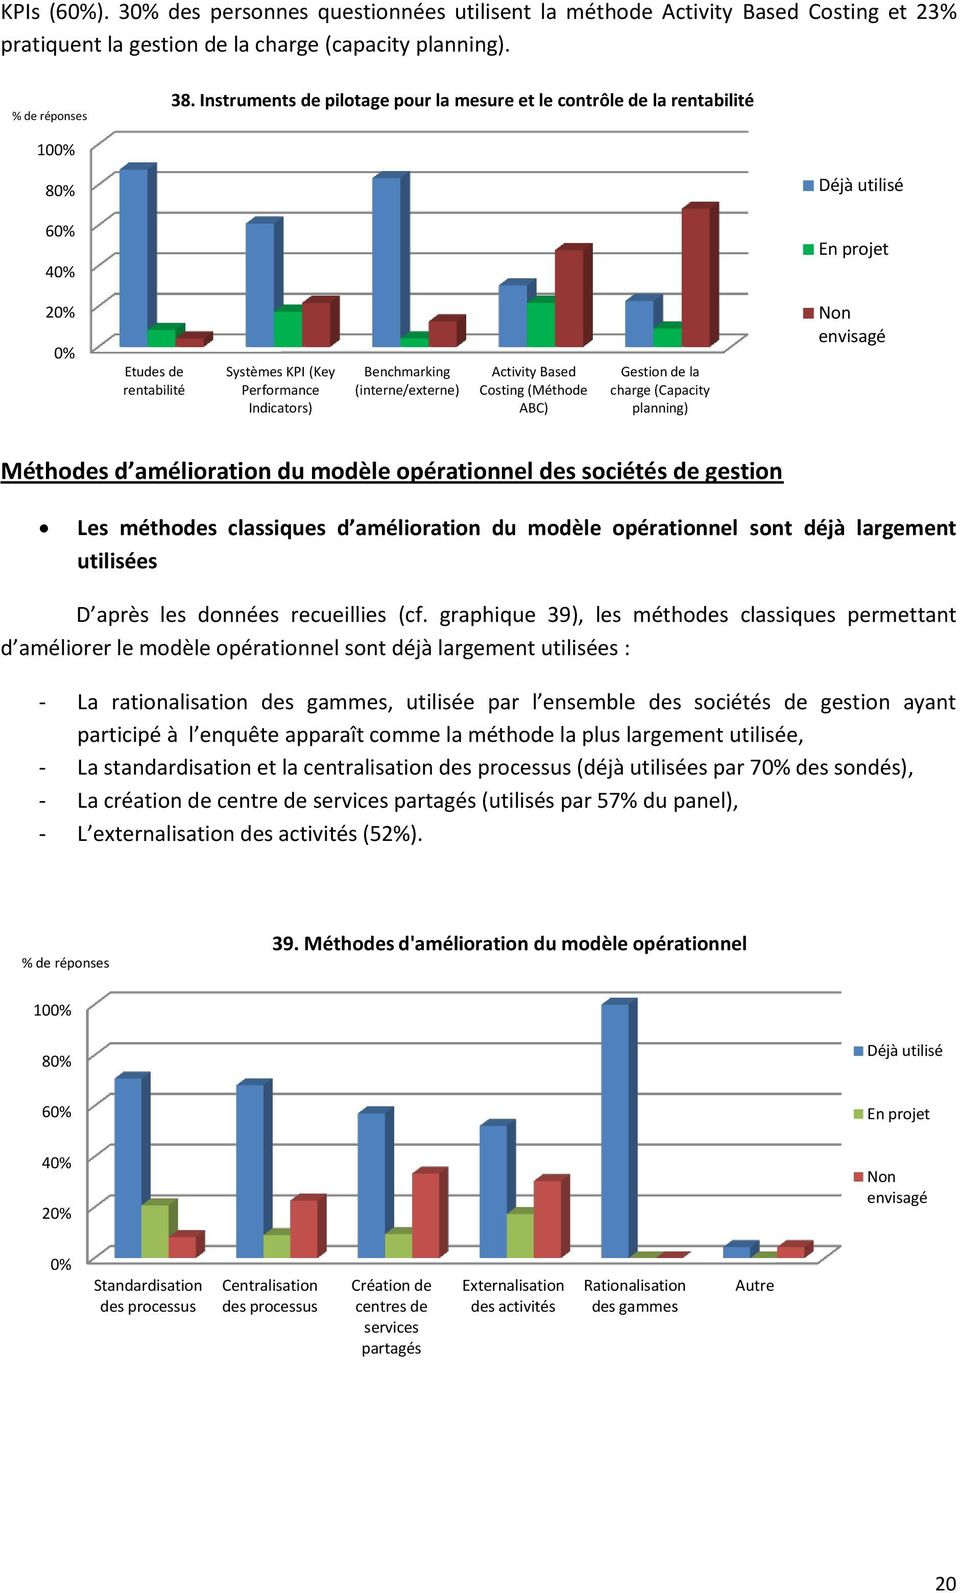 (interne/externe) Activity Based Costing (Méthode ABC) Gestion de la charge (Capacity planning) Non envisagé Méthodes d amélioration du modèle opérationnel des sociétés de gestion Les méthodes